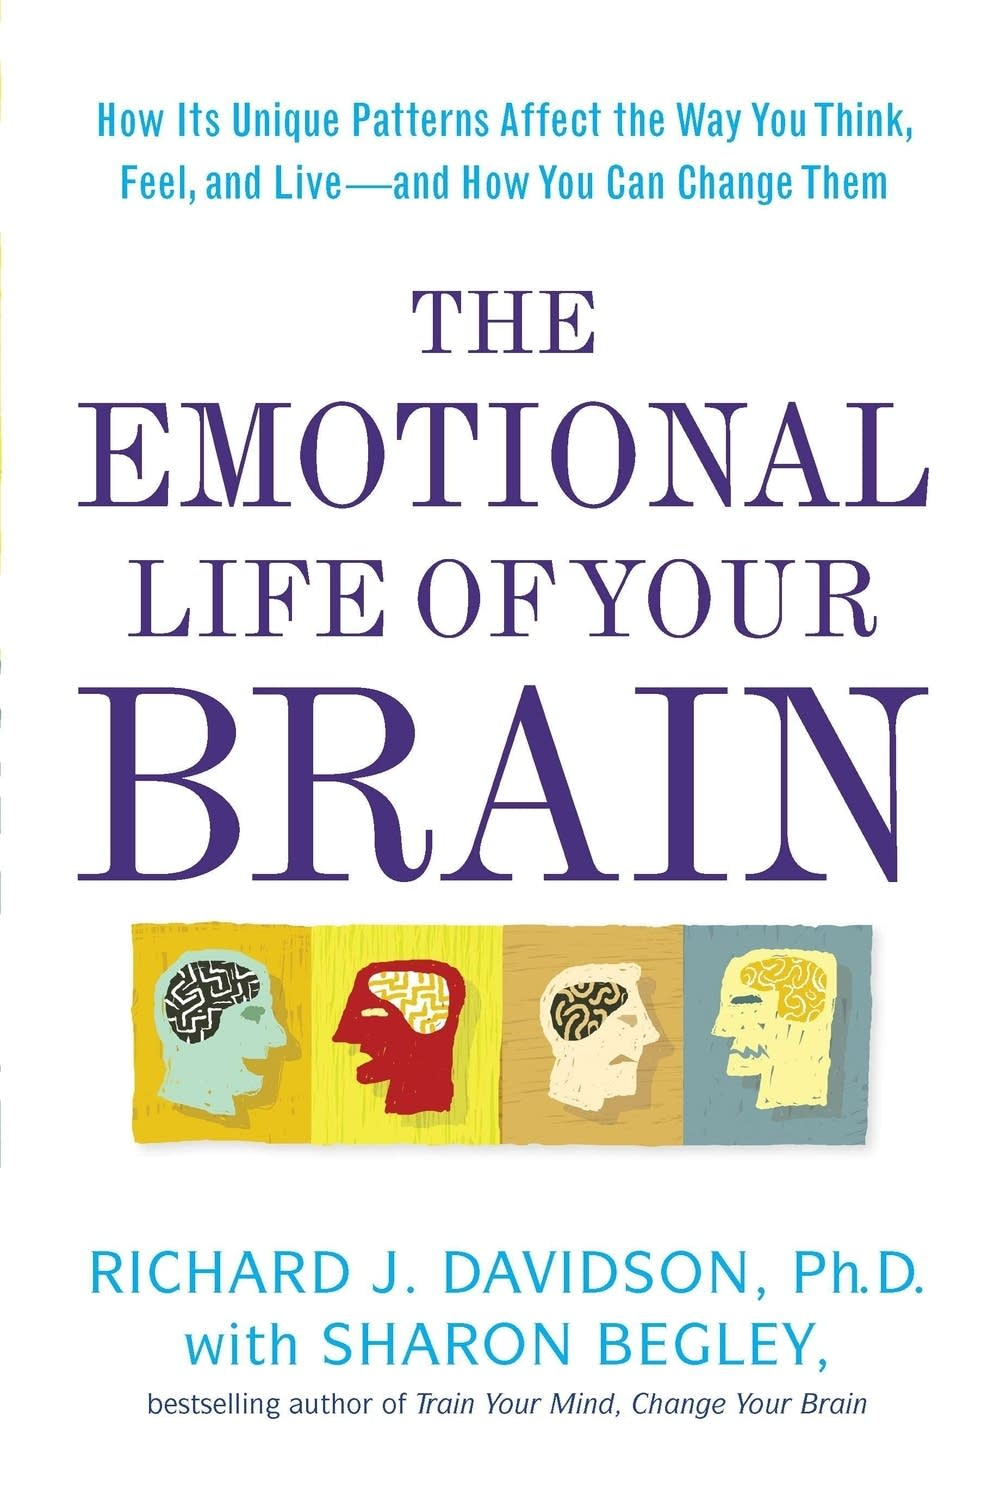 'The Emotional Life of Your Brain'